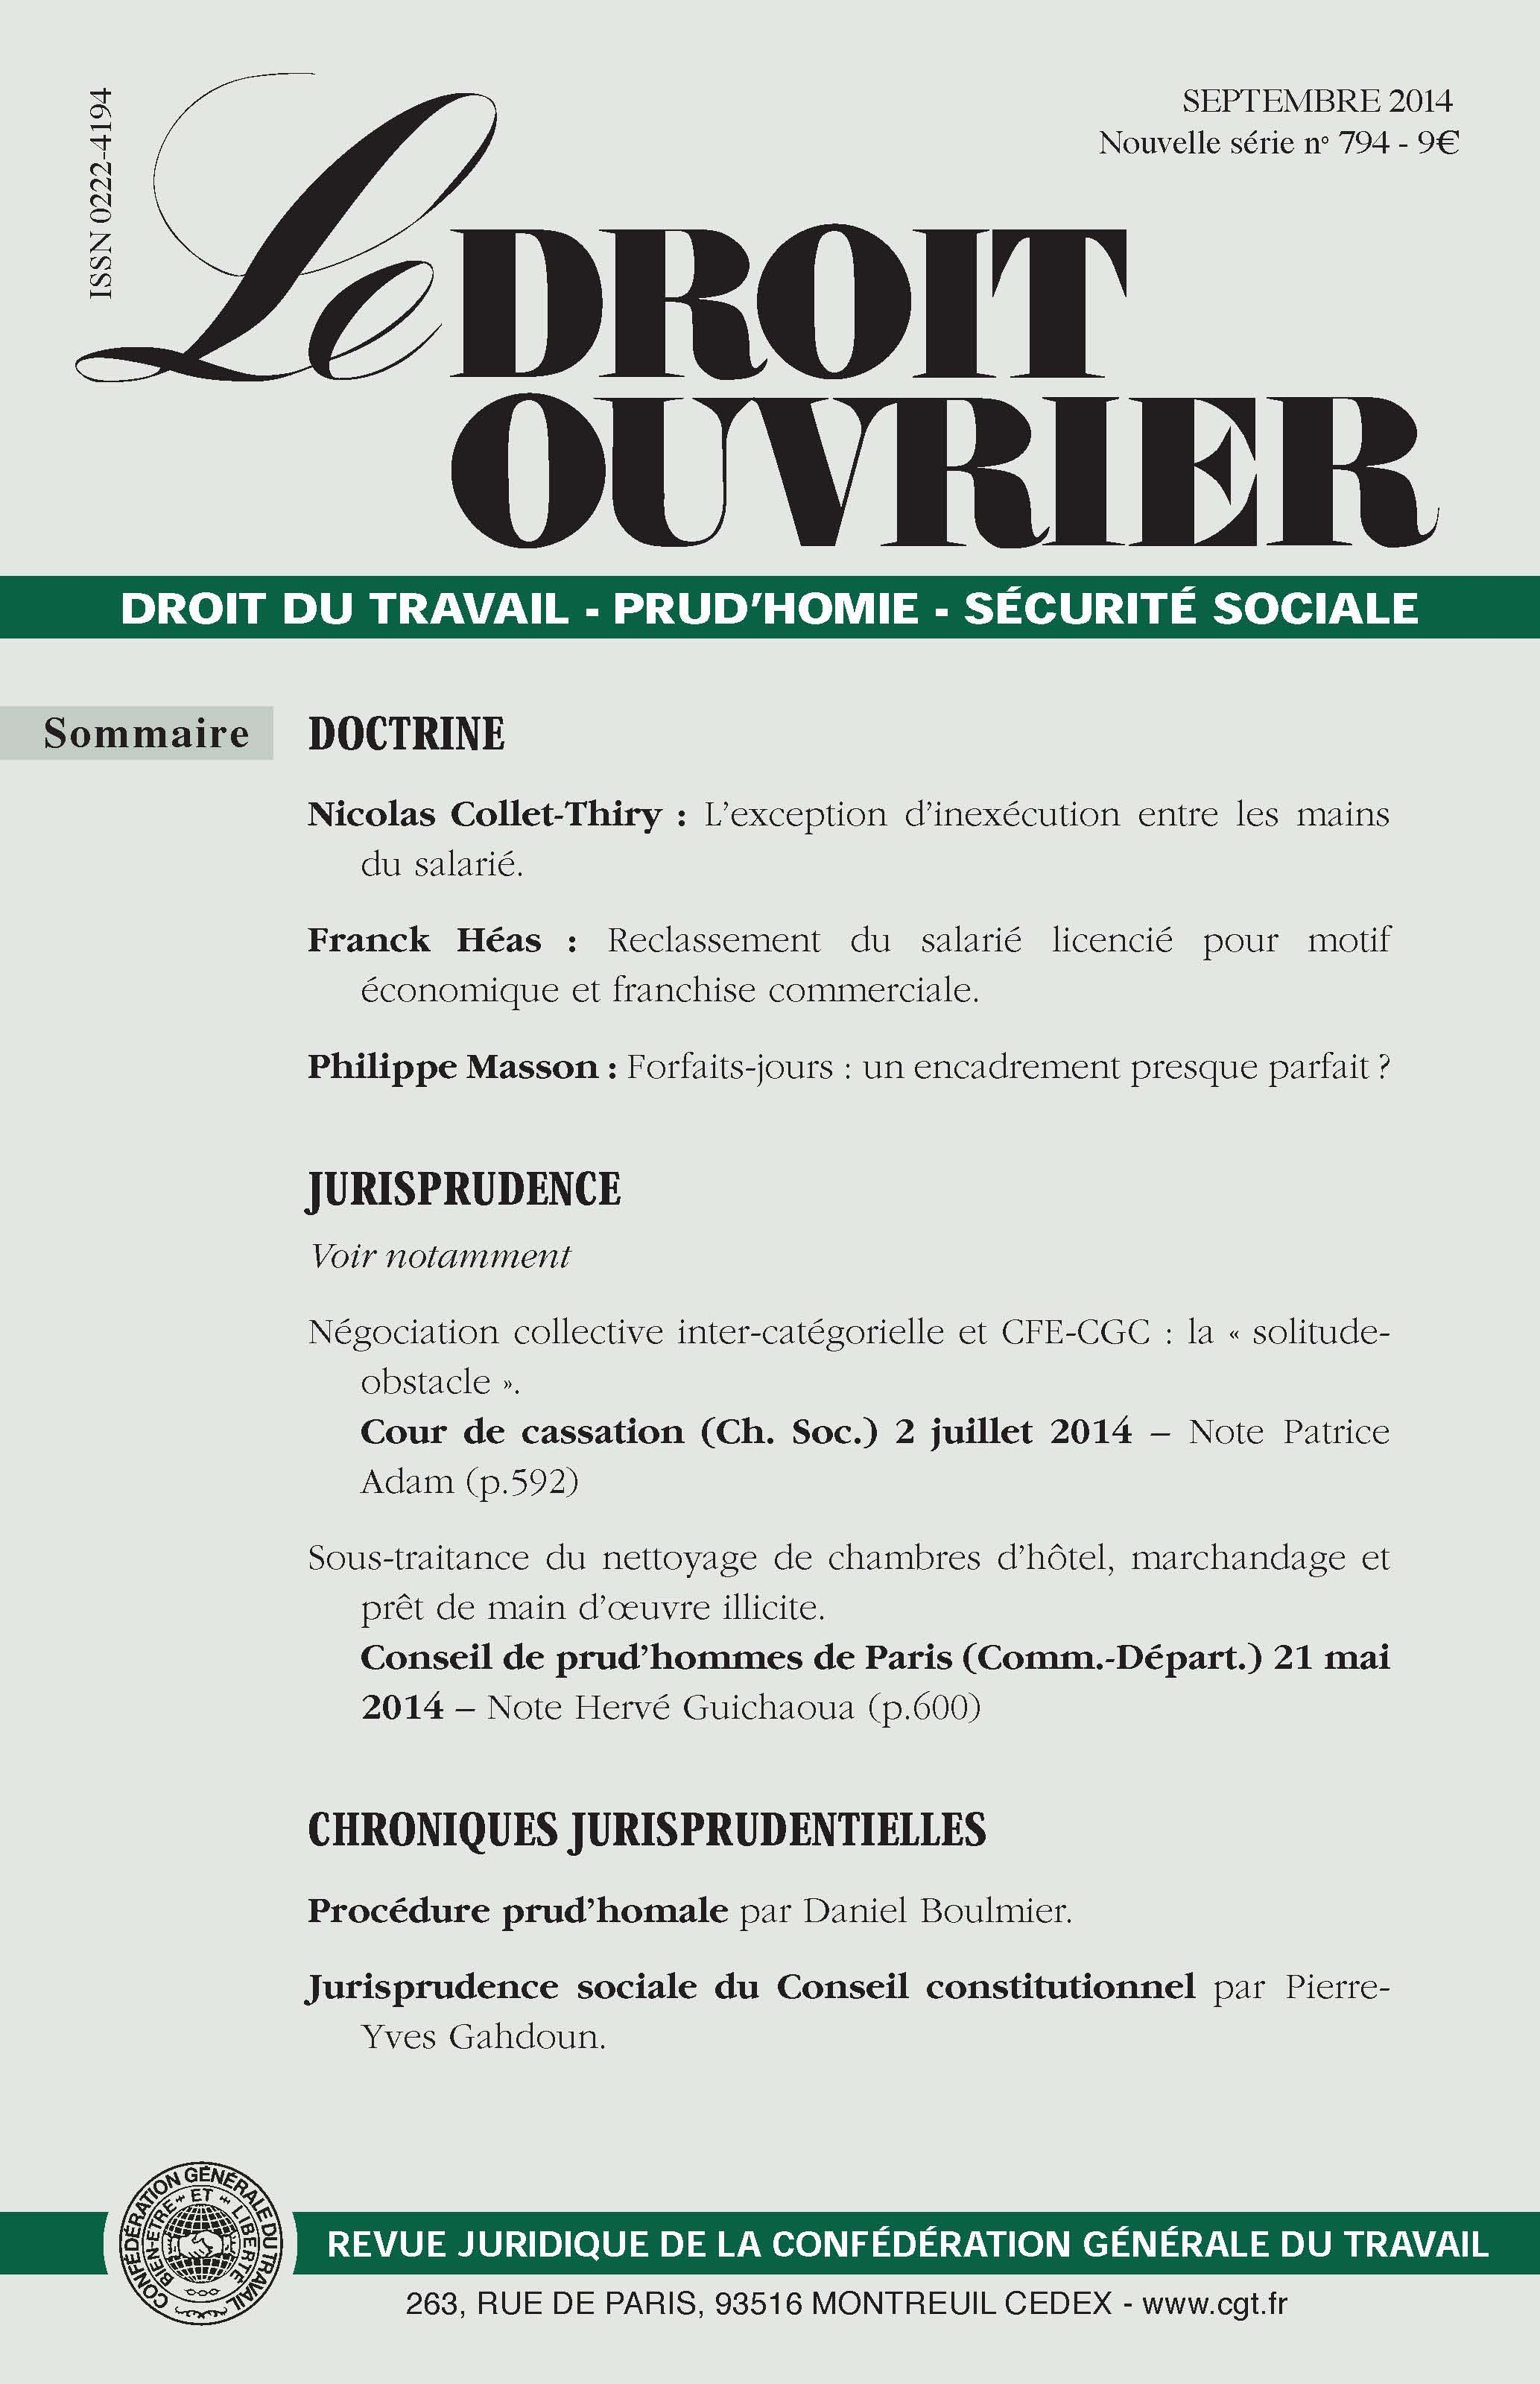 DroitOuvrier_sept2014_sommaire_Page_1